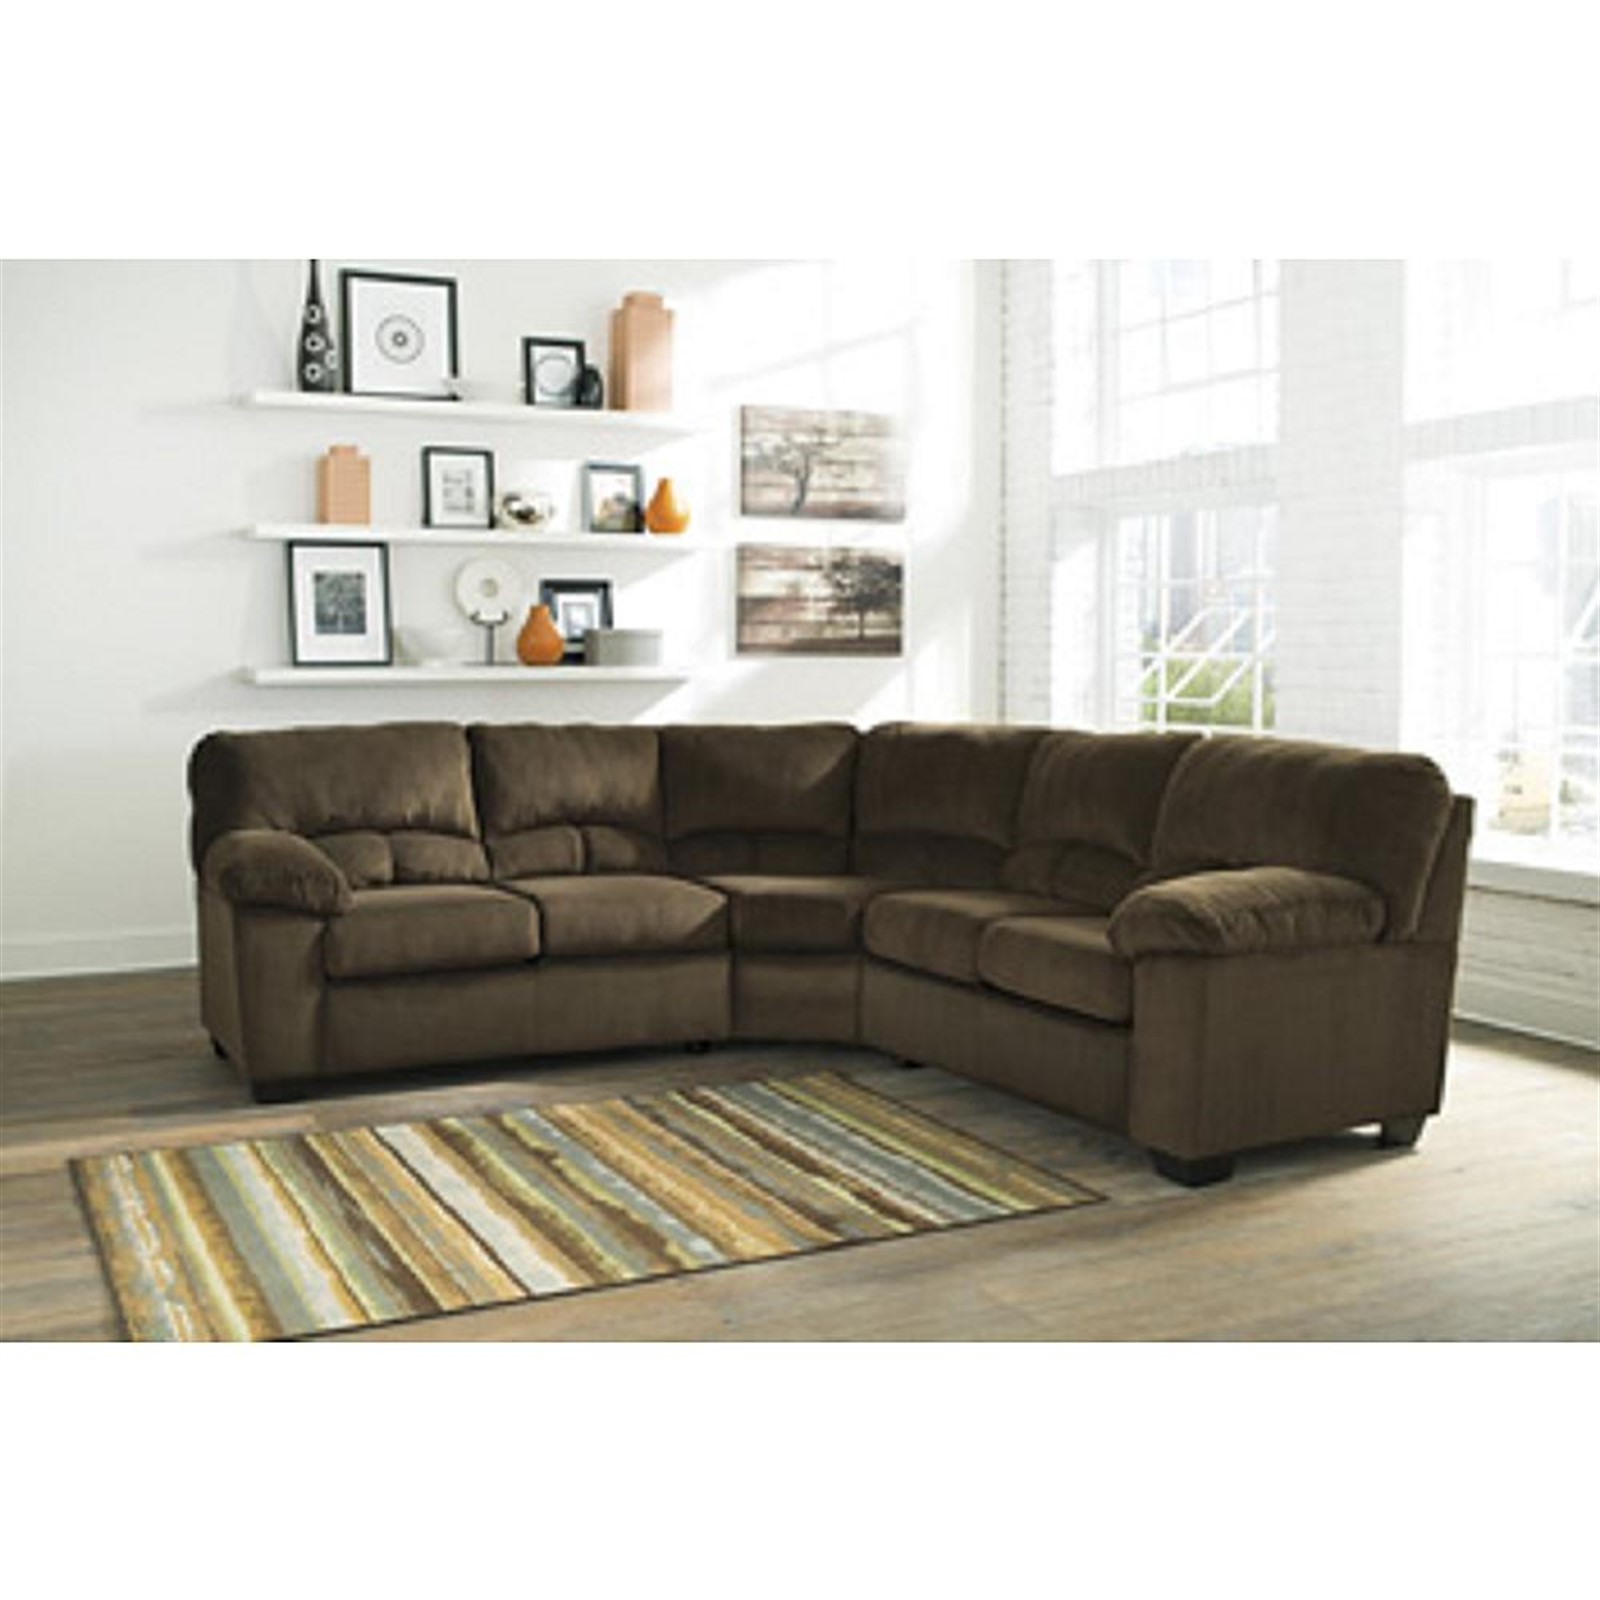 Signature Design by Ashley Dailey Chocolate Sectional